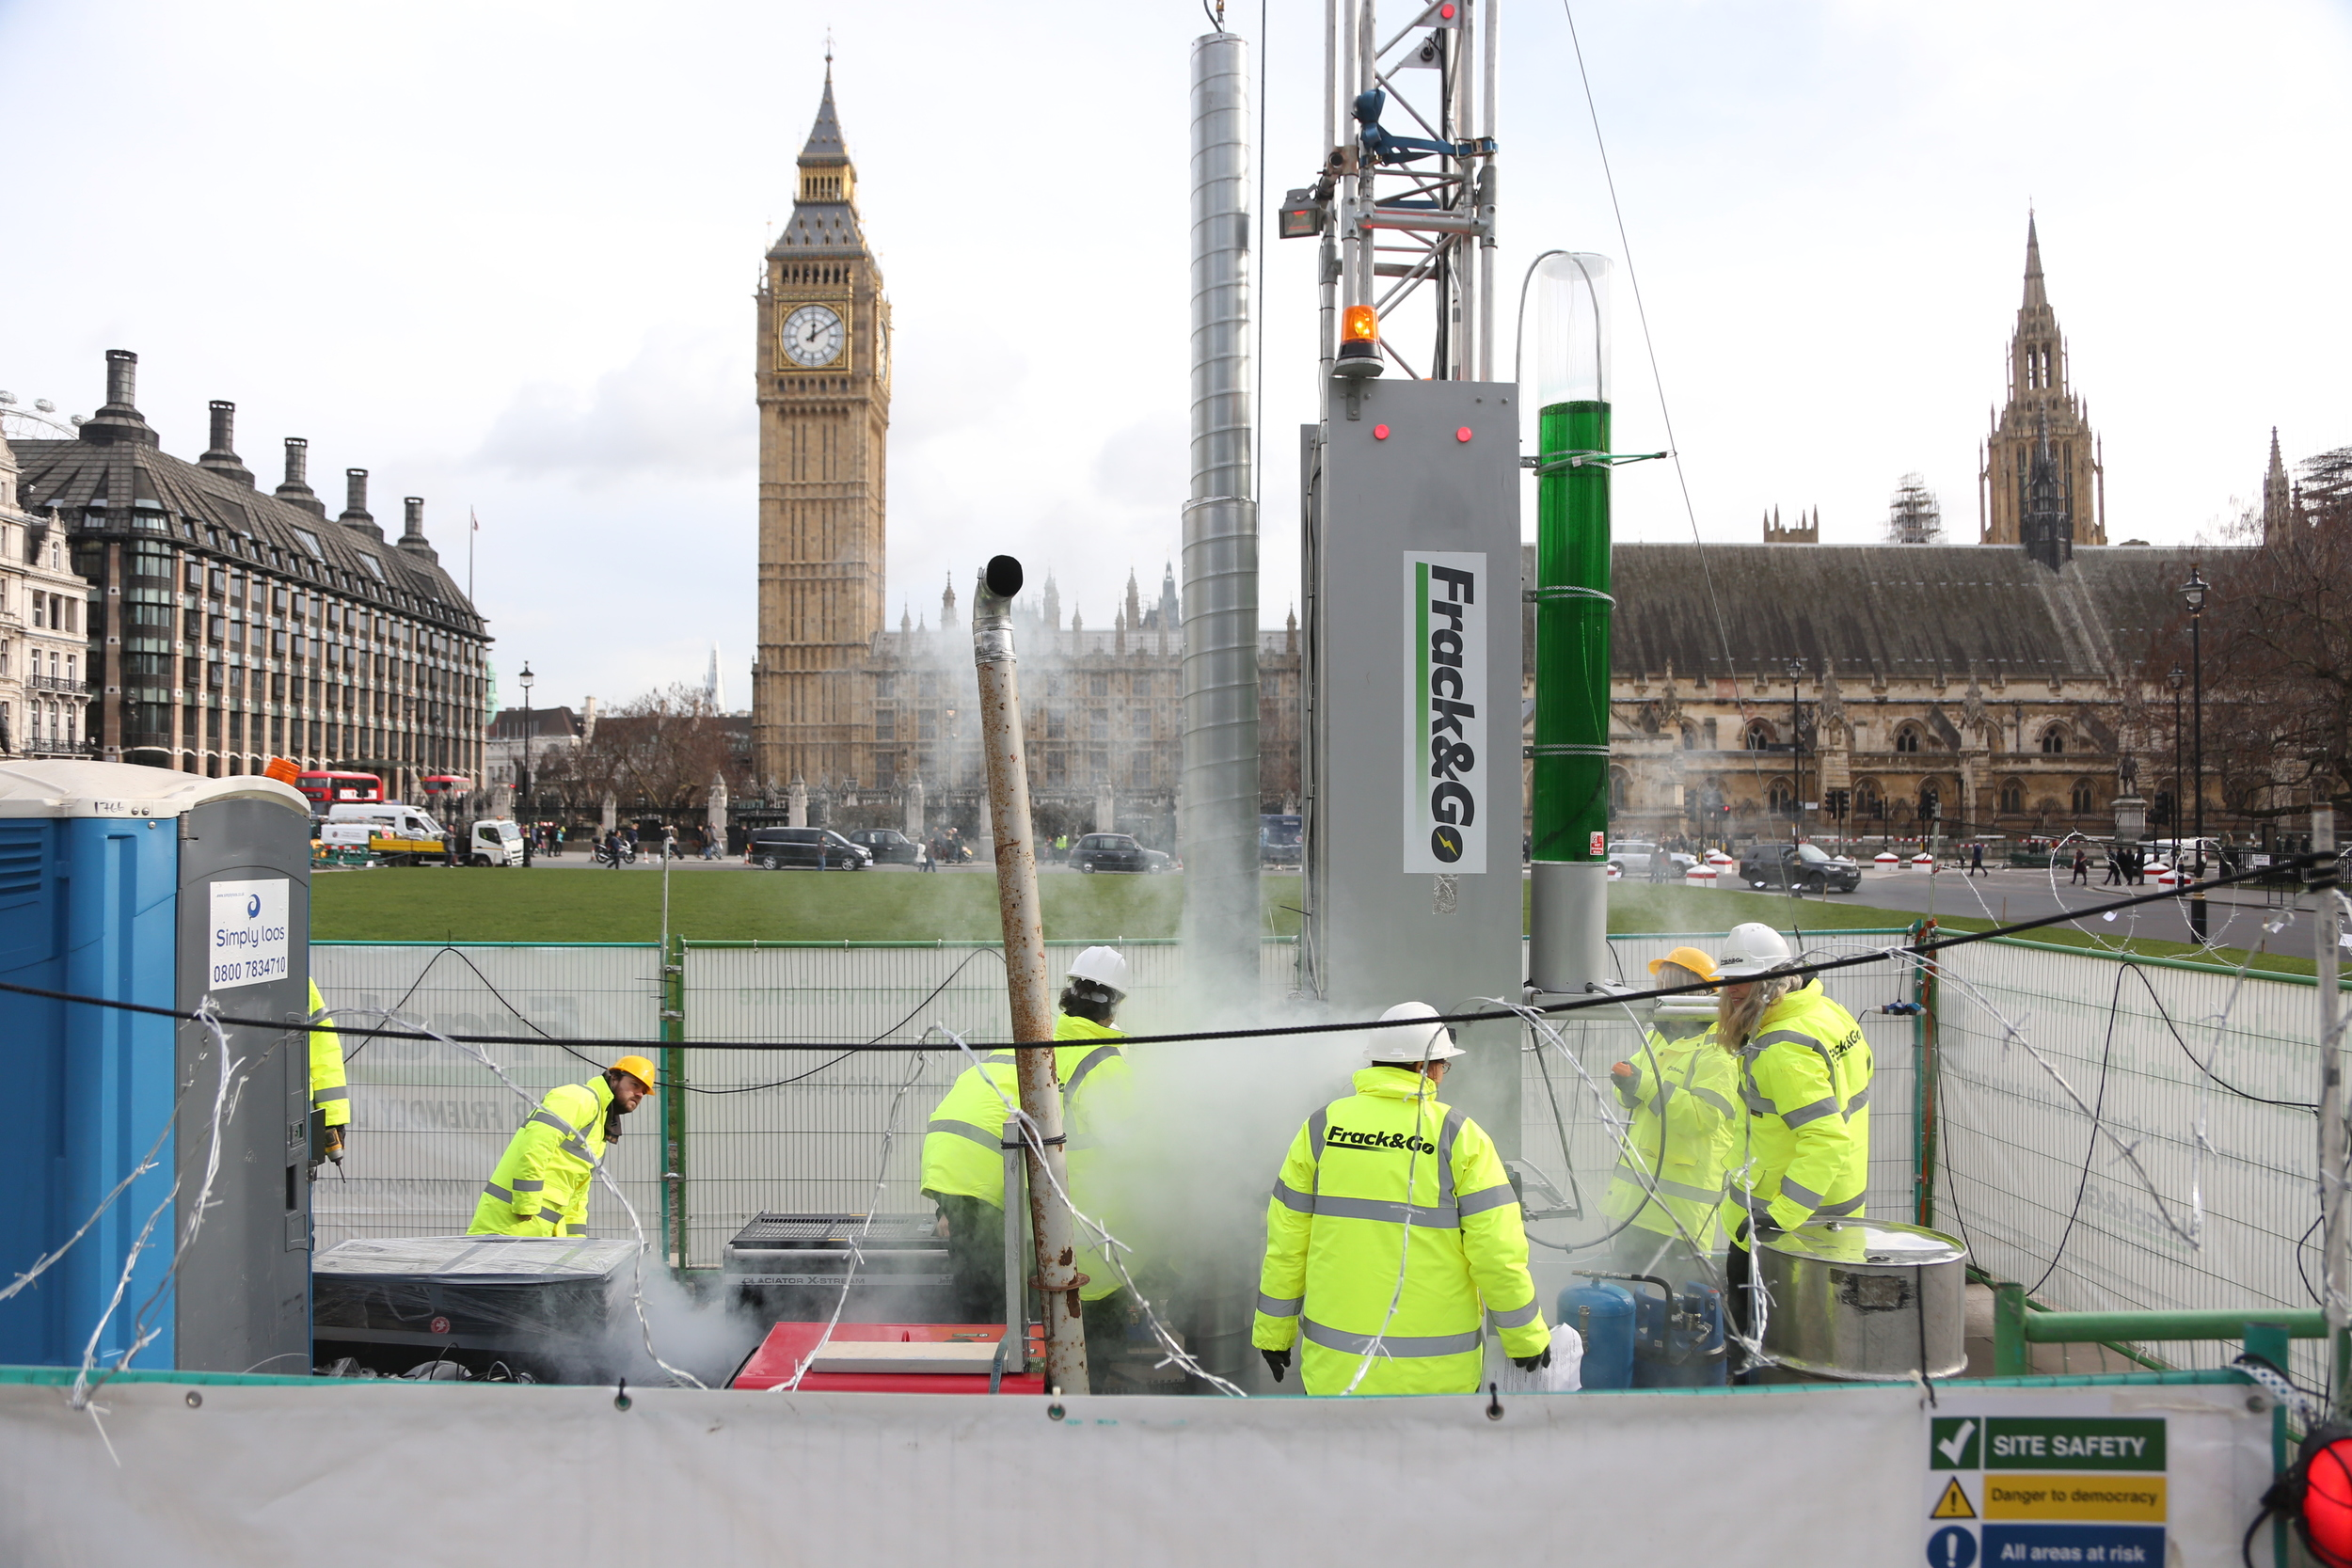 Pretend fracking rig outside Westminster as part of anti-fracking protest